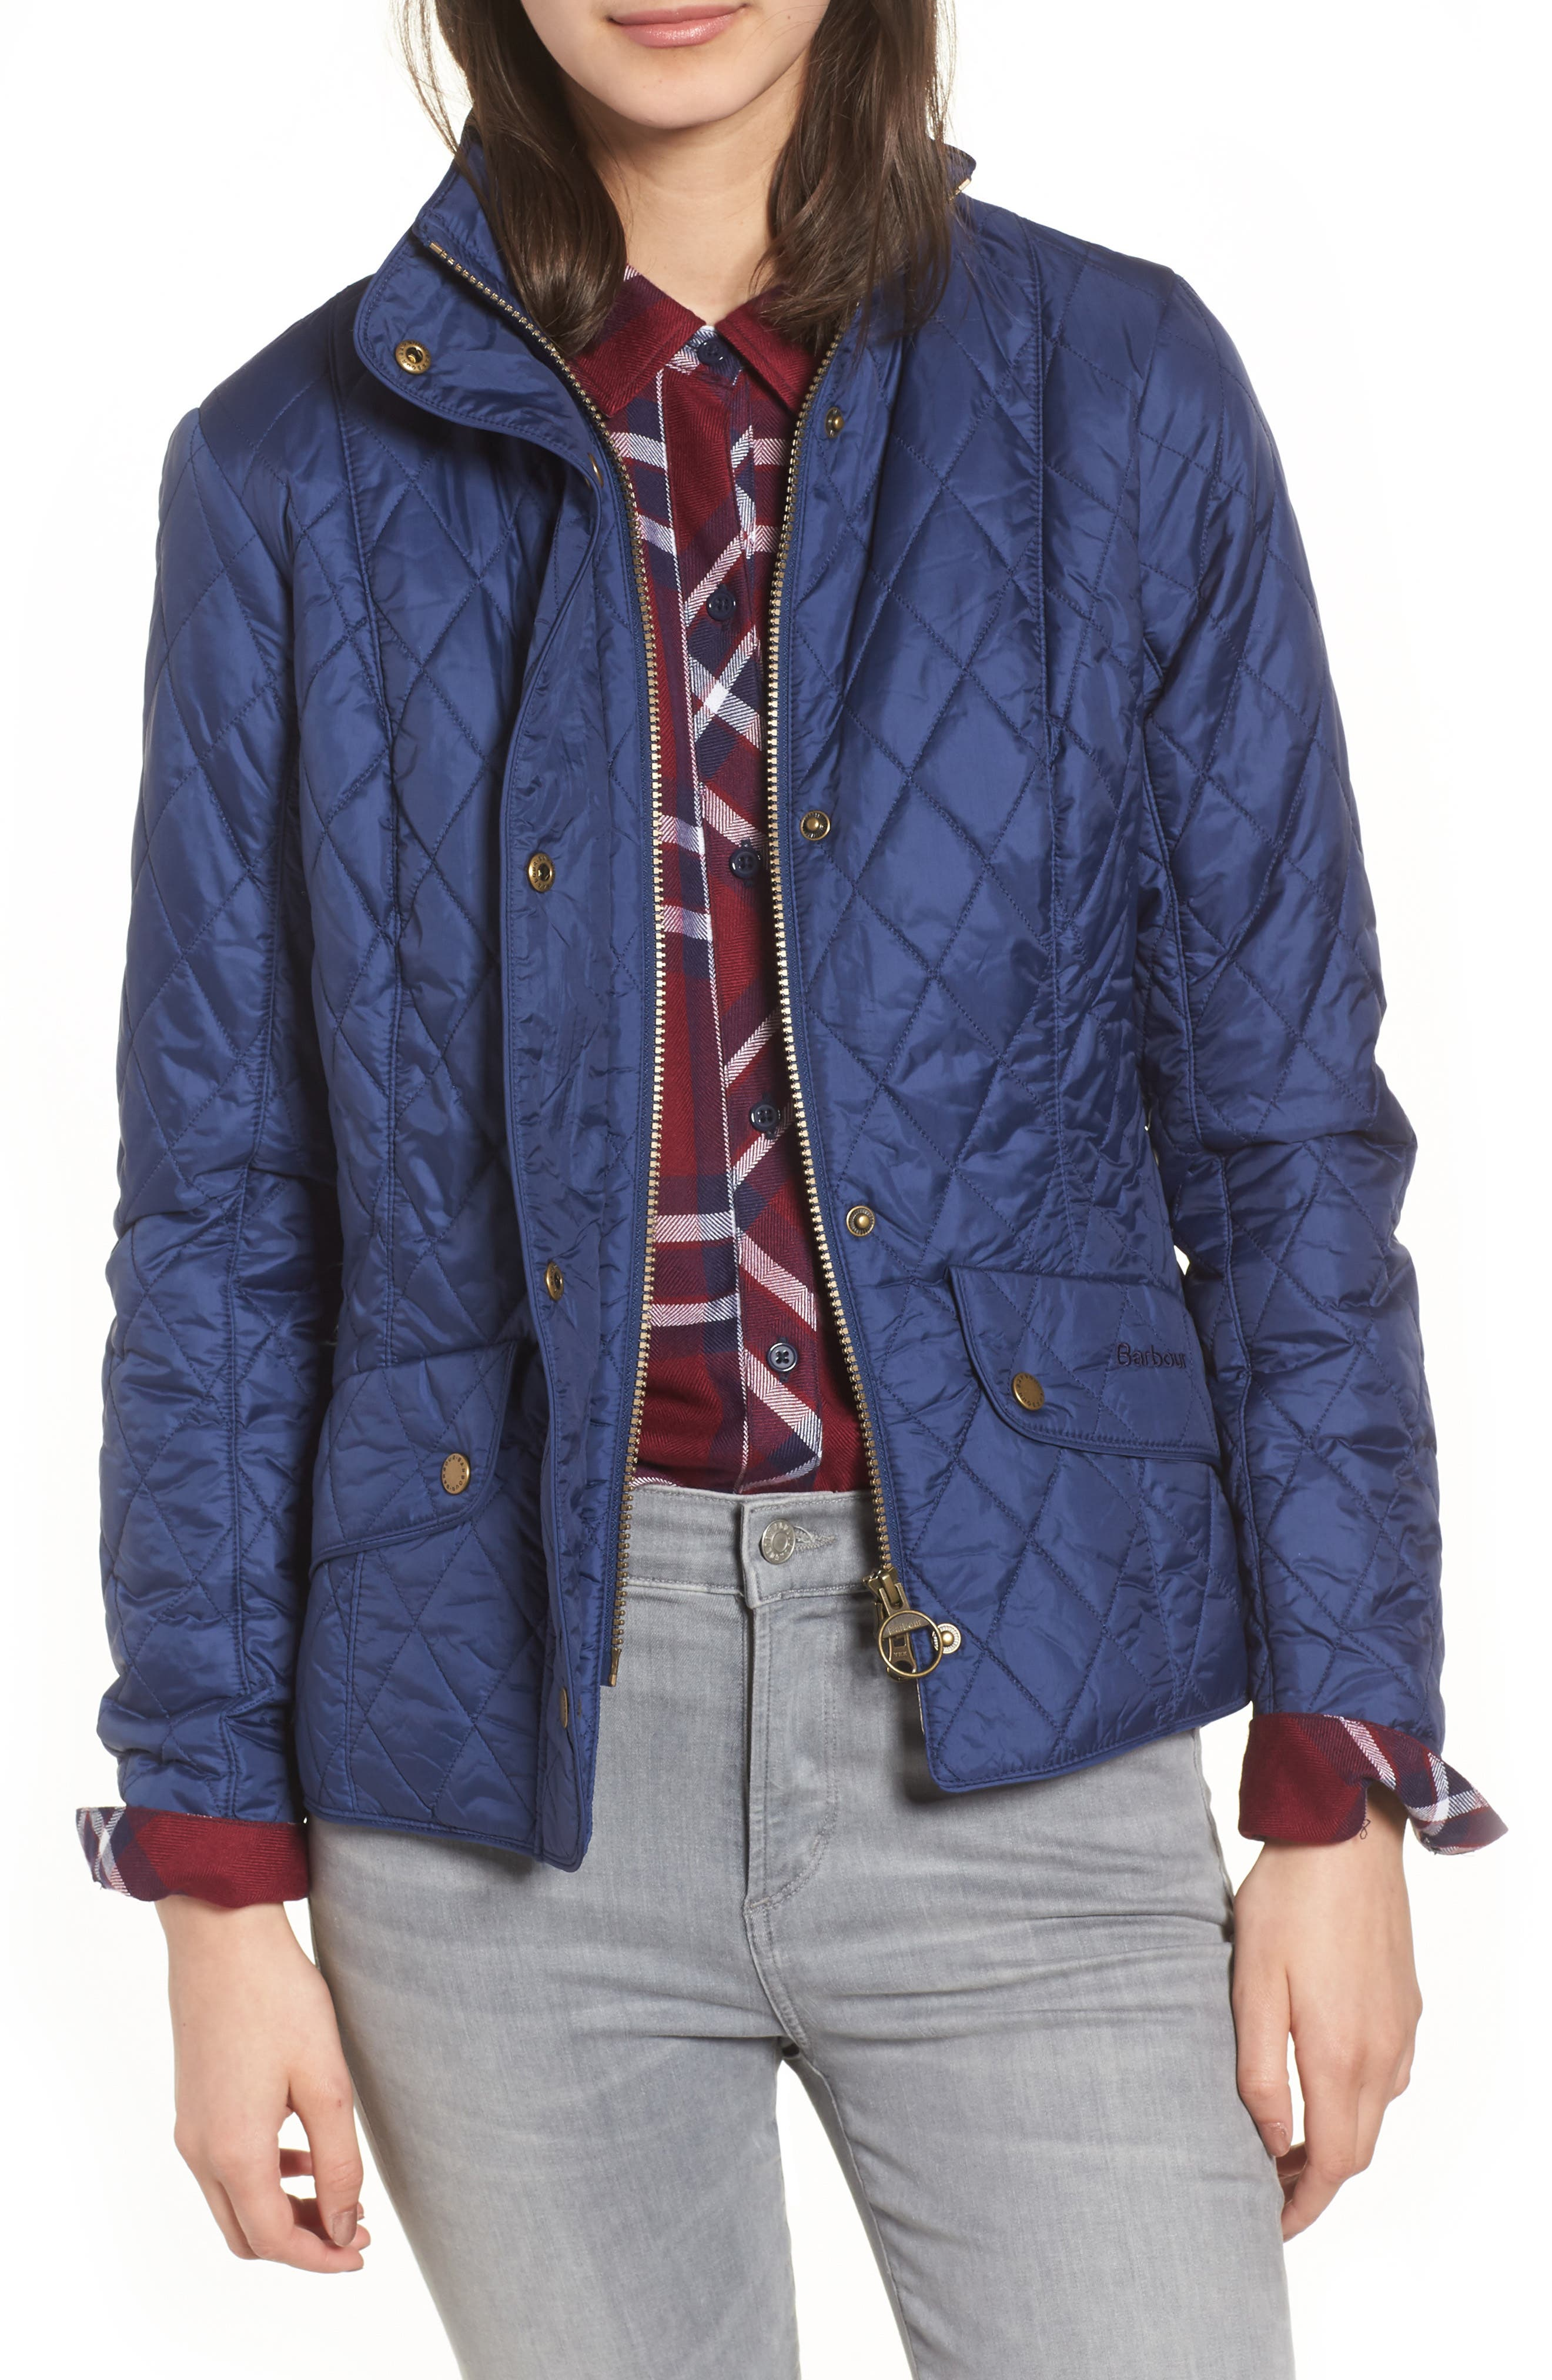 jacket ariel idle quilted quilt poler black at mens the man international barbour